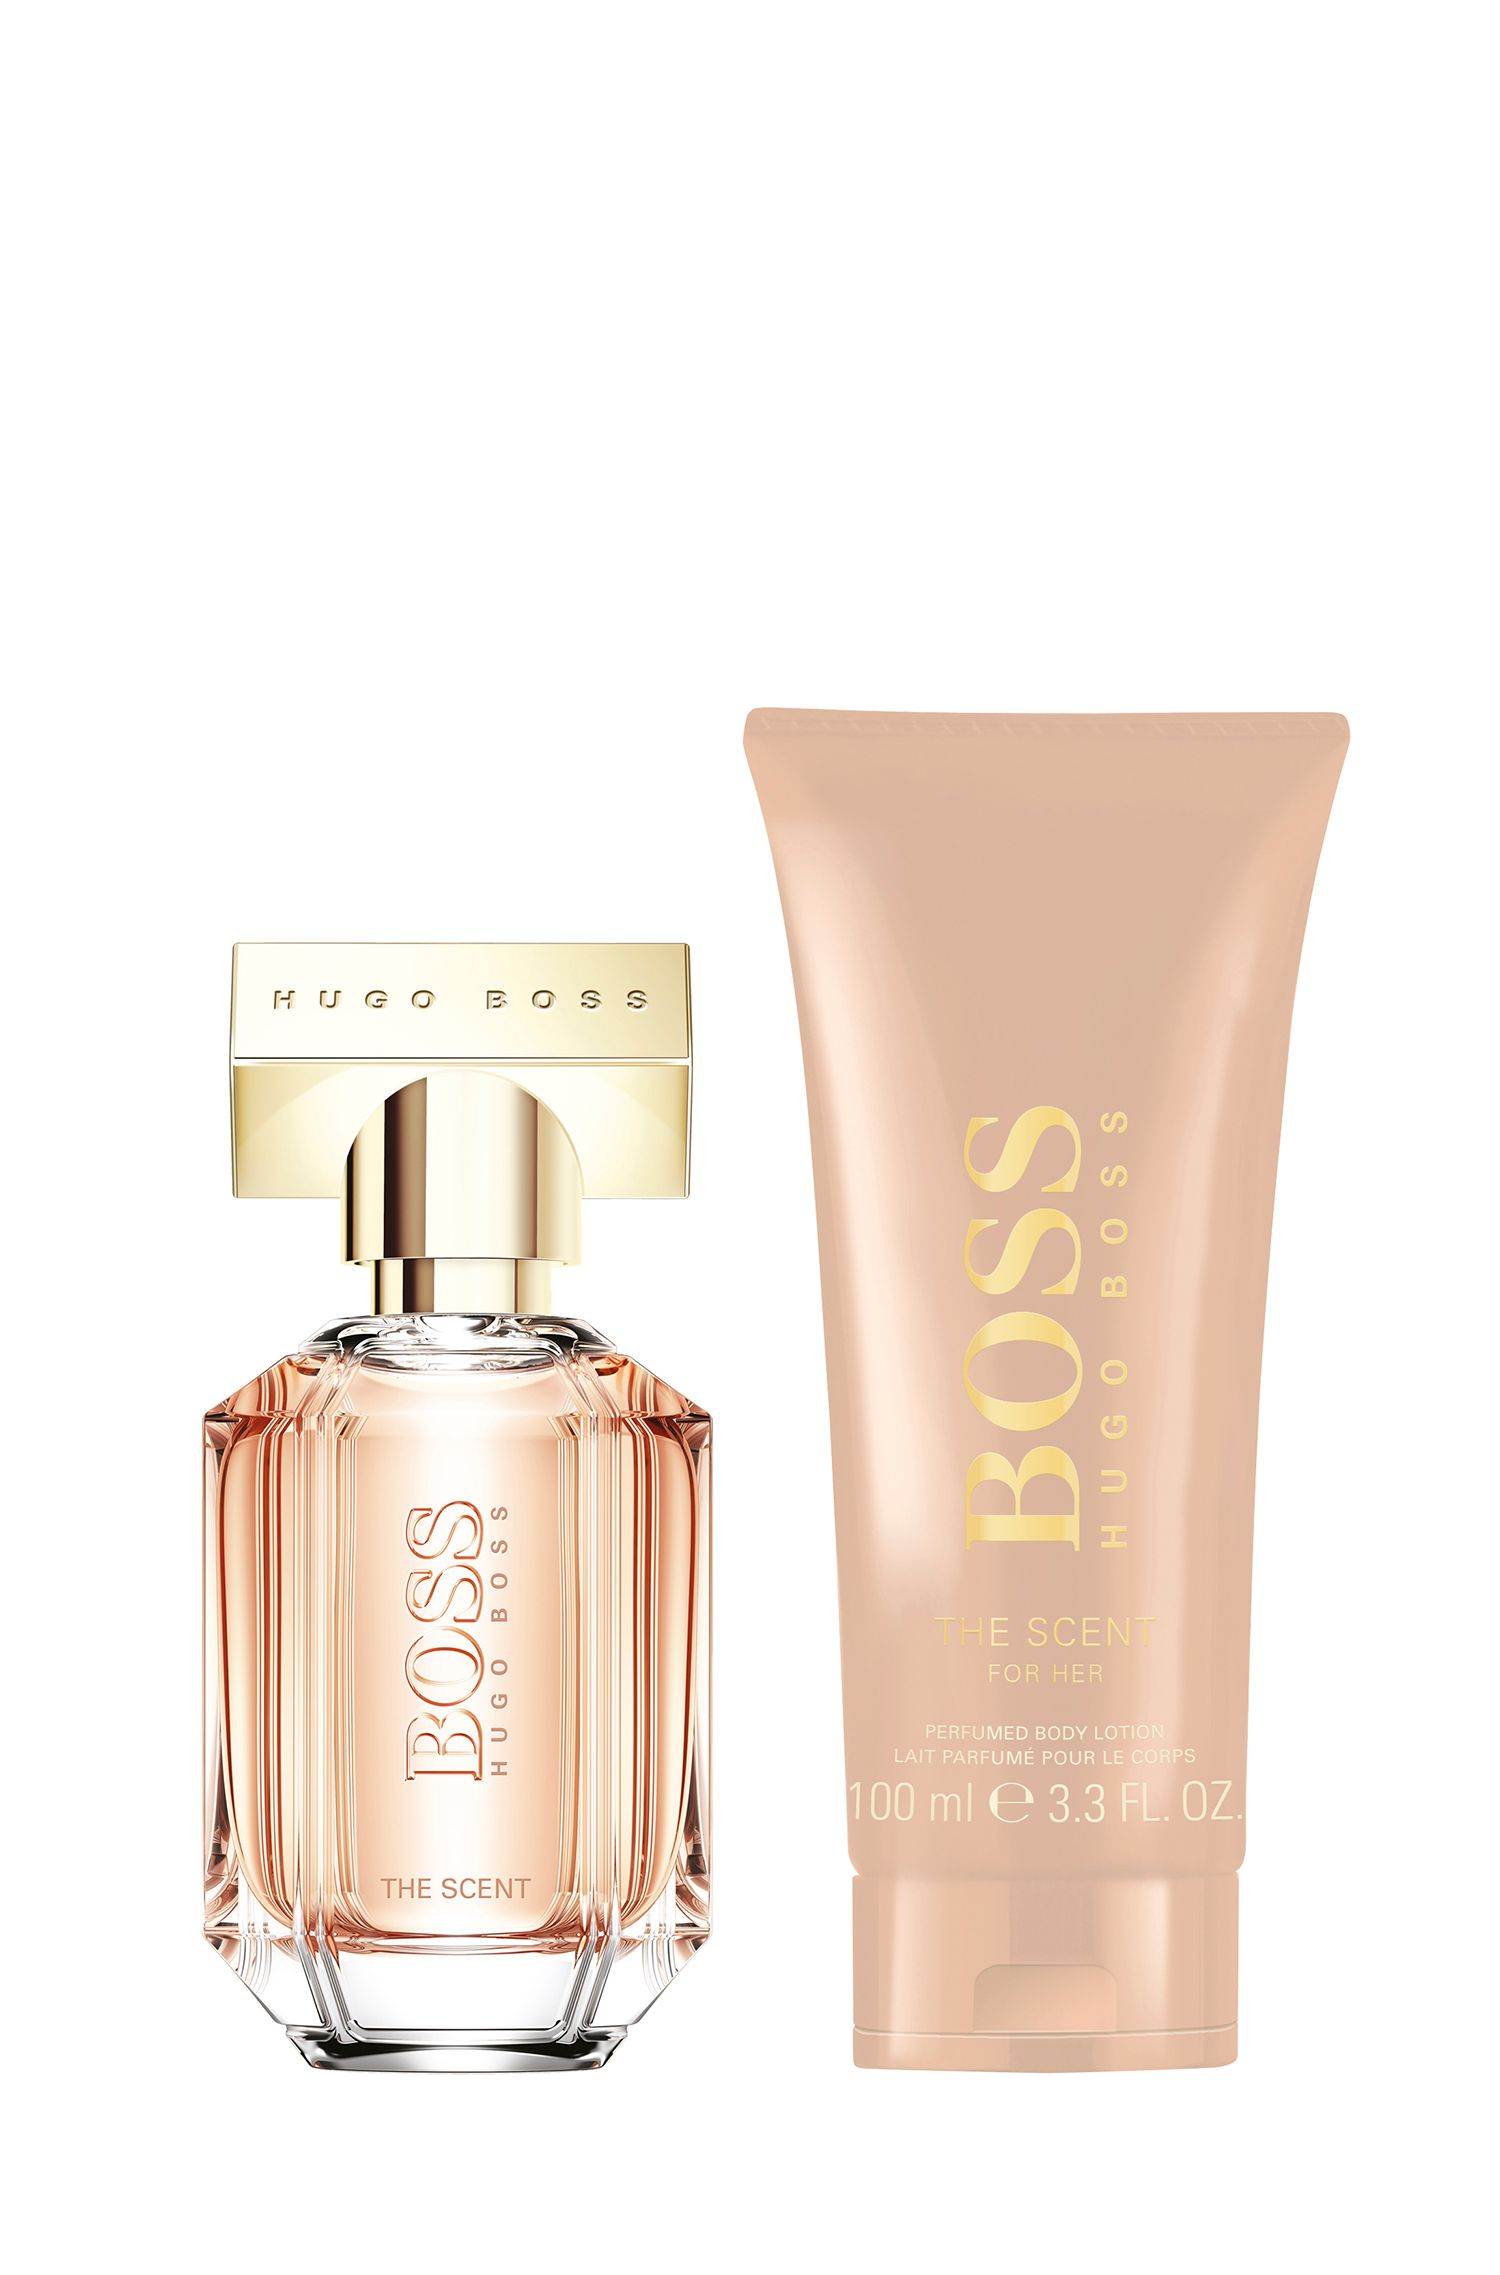 Coffret cadeau parfum The Scent for Her de BOSS